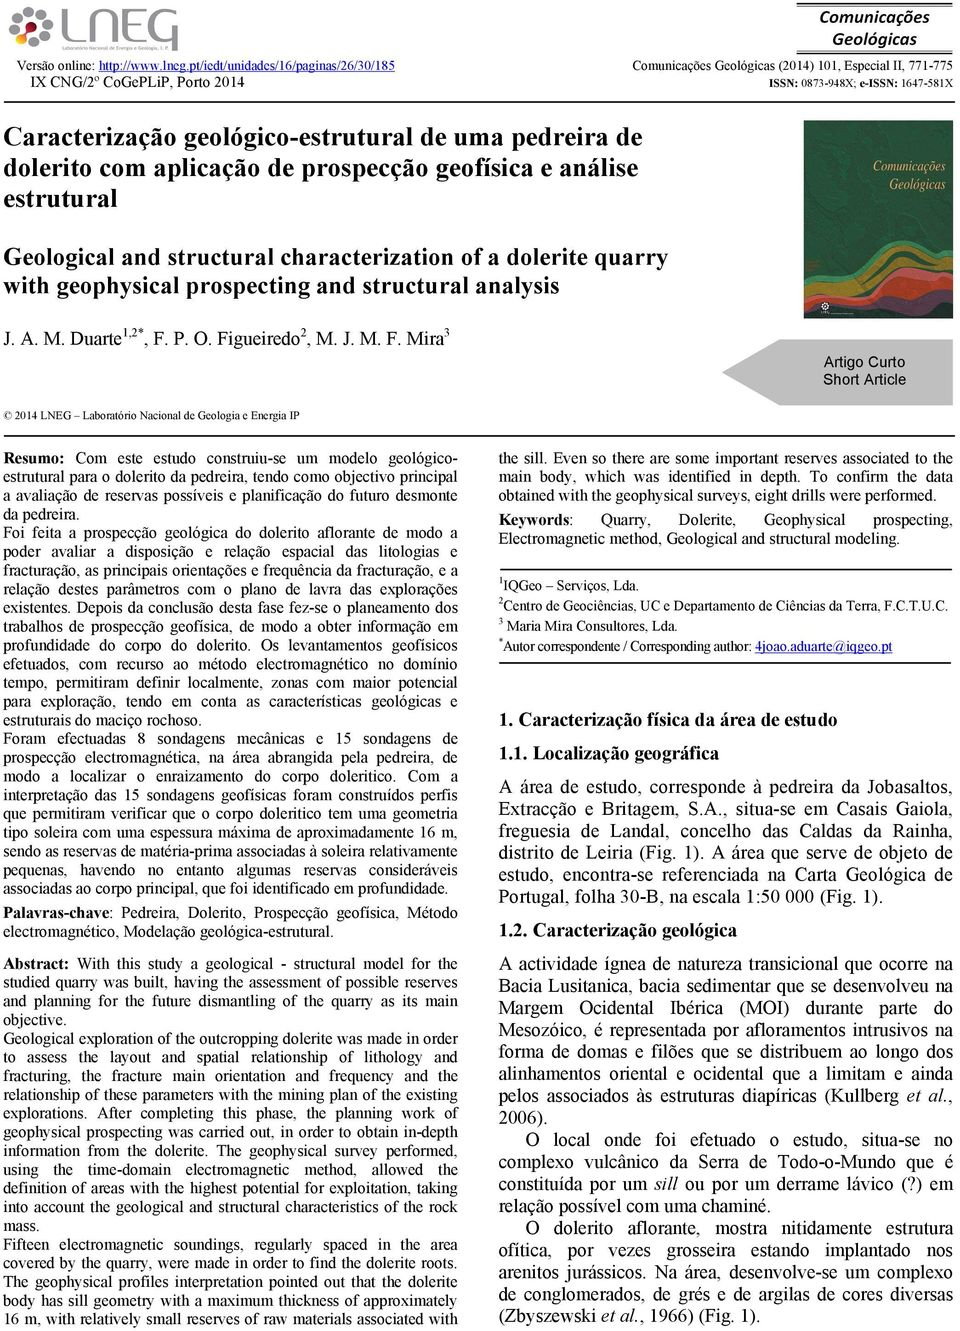 uma pedreira de dolerito com aplicação de prospecção geofísica e análise estrutural Geological and structural characterization of a dolerite quarry with geophysical prospecting and structural